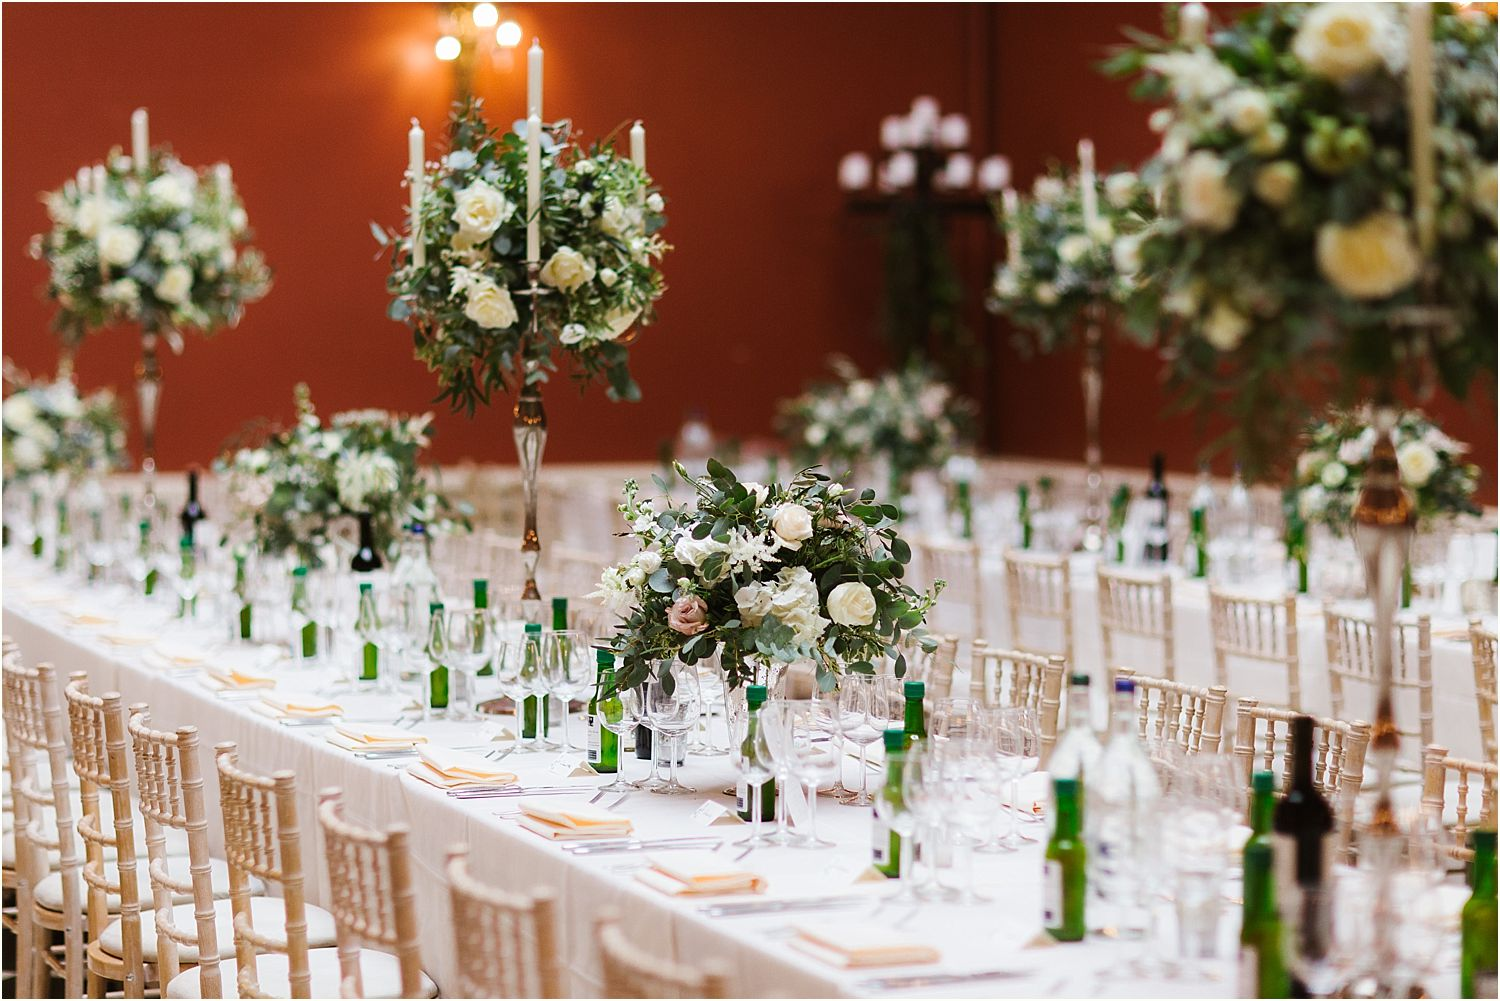 Floral table decorations by Surrey based Florist, Gabi Burton, The Fine Flowers Comapny of Surrey